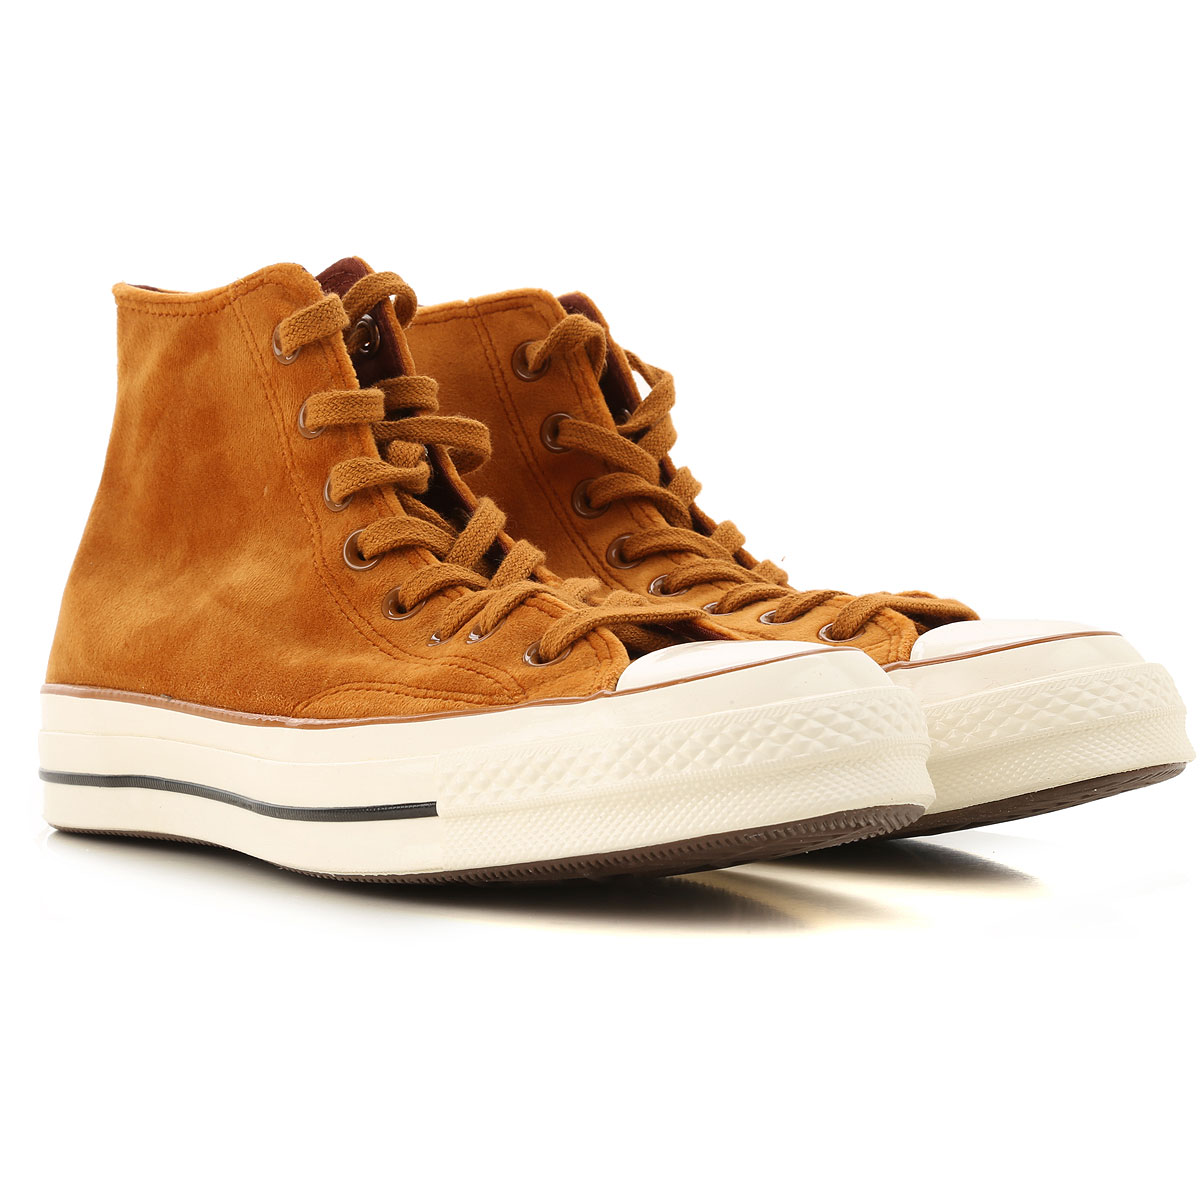 Converse Sneakers for Men On Sale, Light Brown, Textile, 2019, 7.5 9